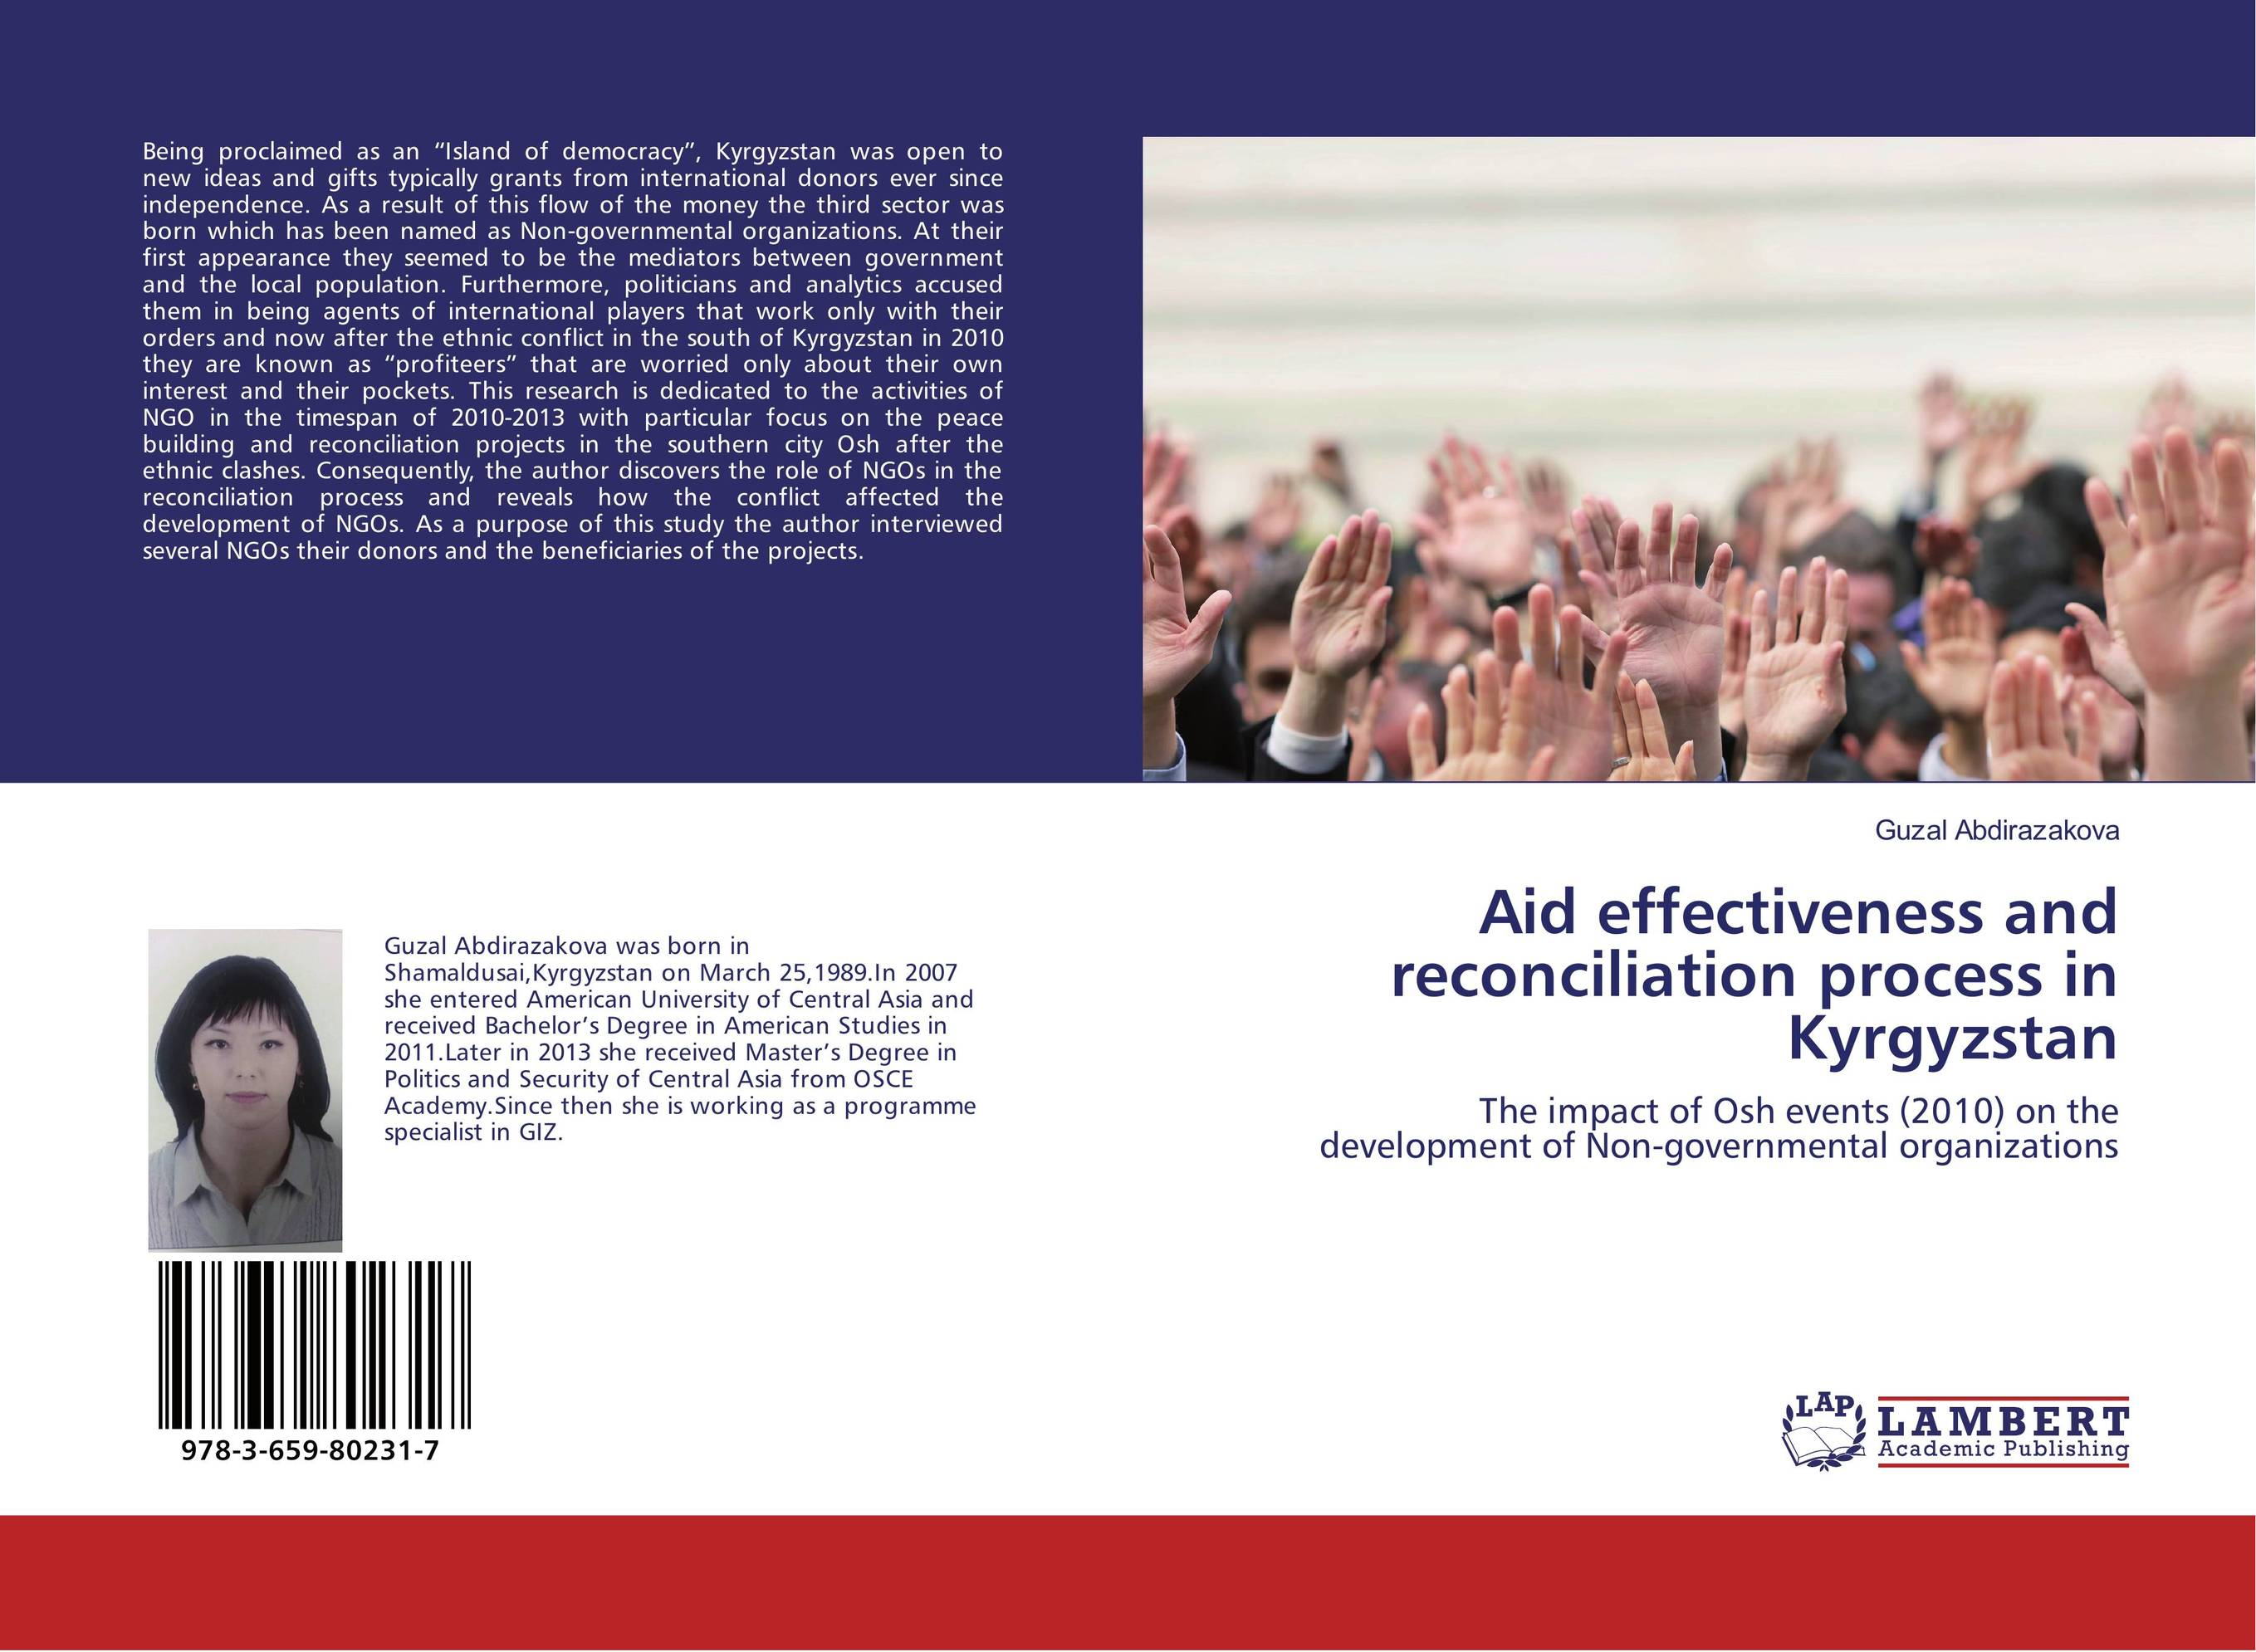 Aid effectiveness and reconciliation process in Kyrgyzstan ngos